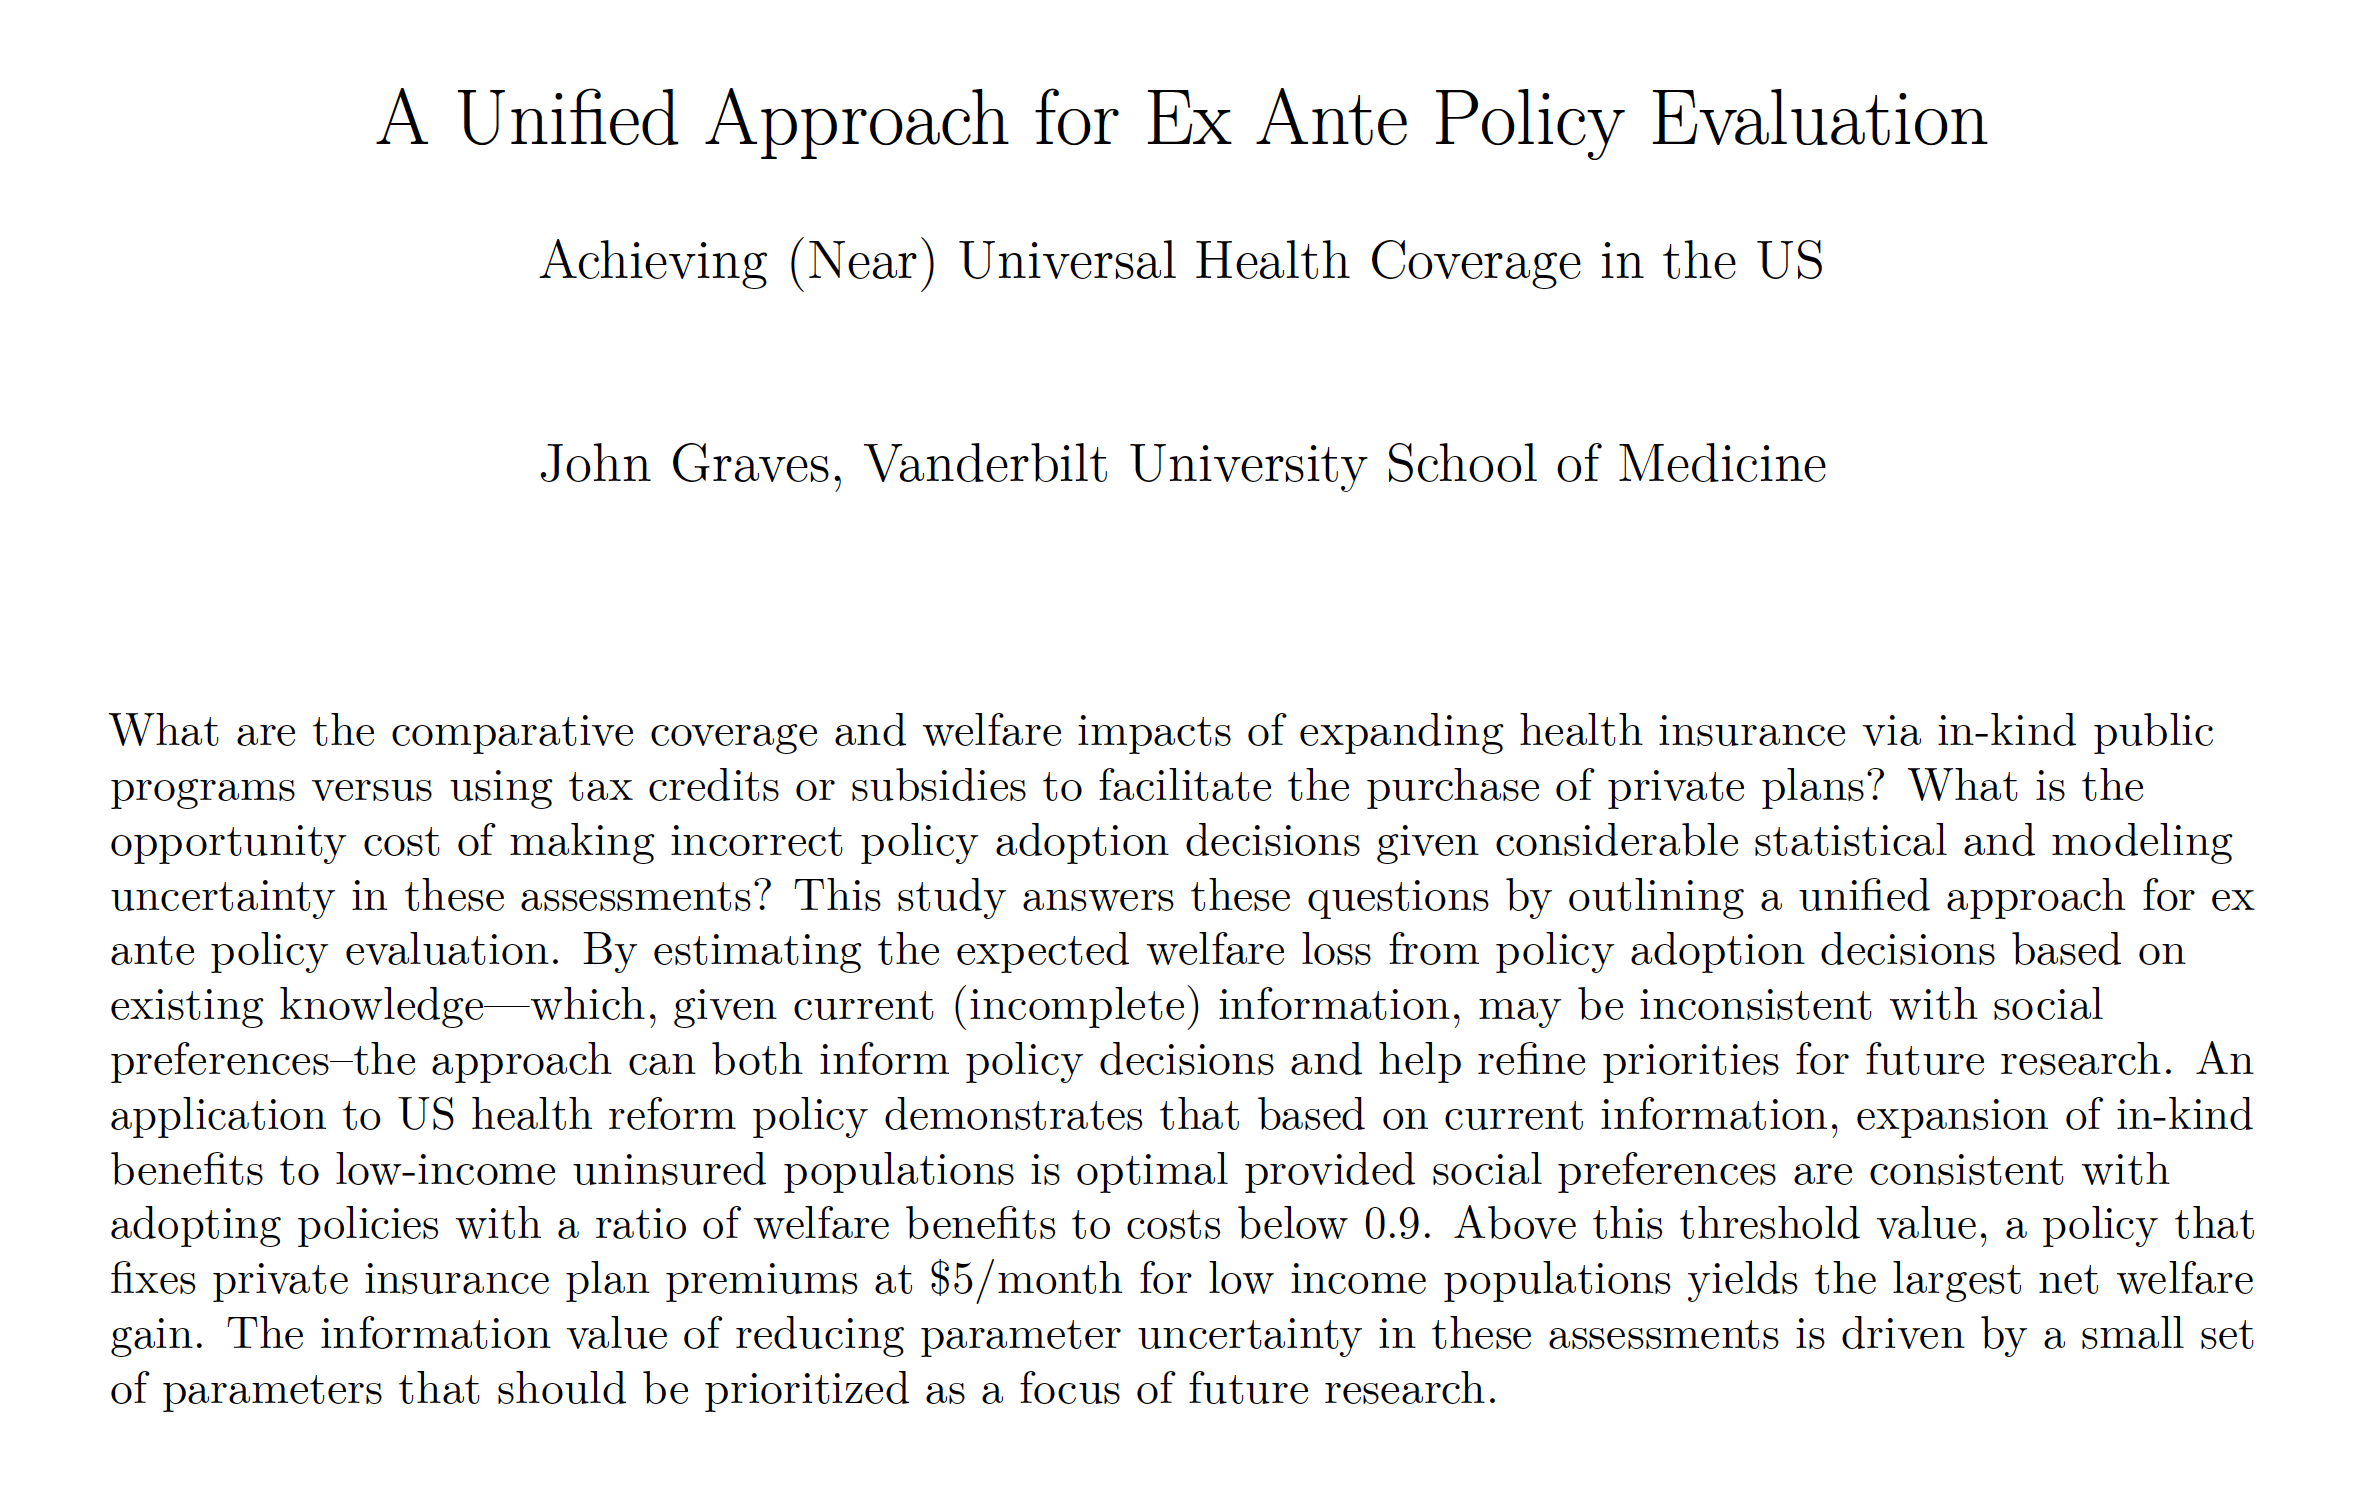 """Cover & abstract of a new working paper by John Graves, PhD, titled """"A Unified Approach for Ex Ante Policy Evaluation"""""""